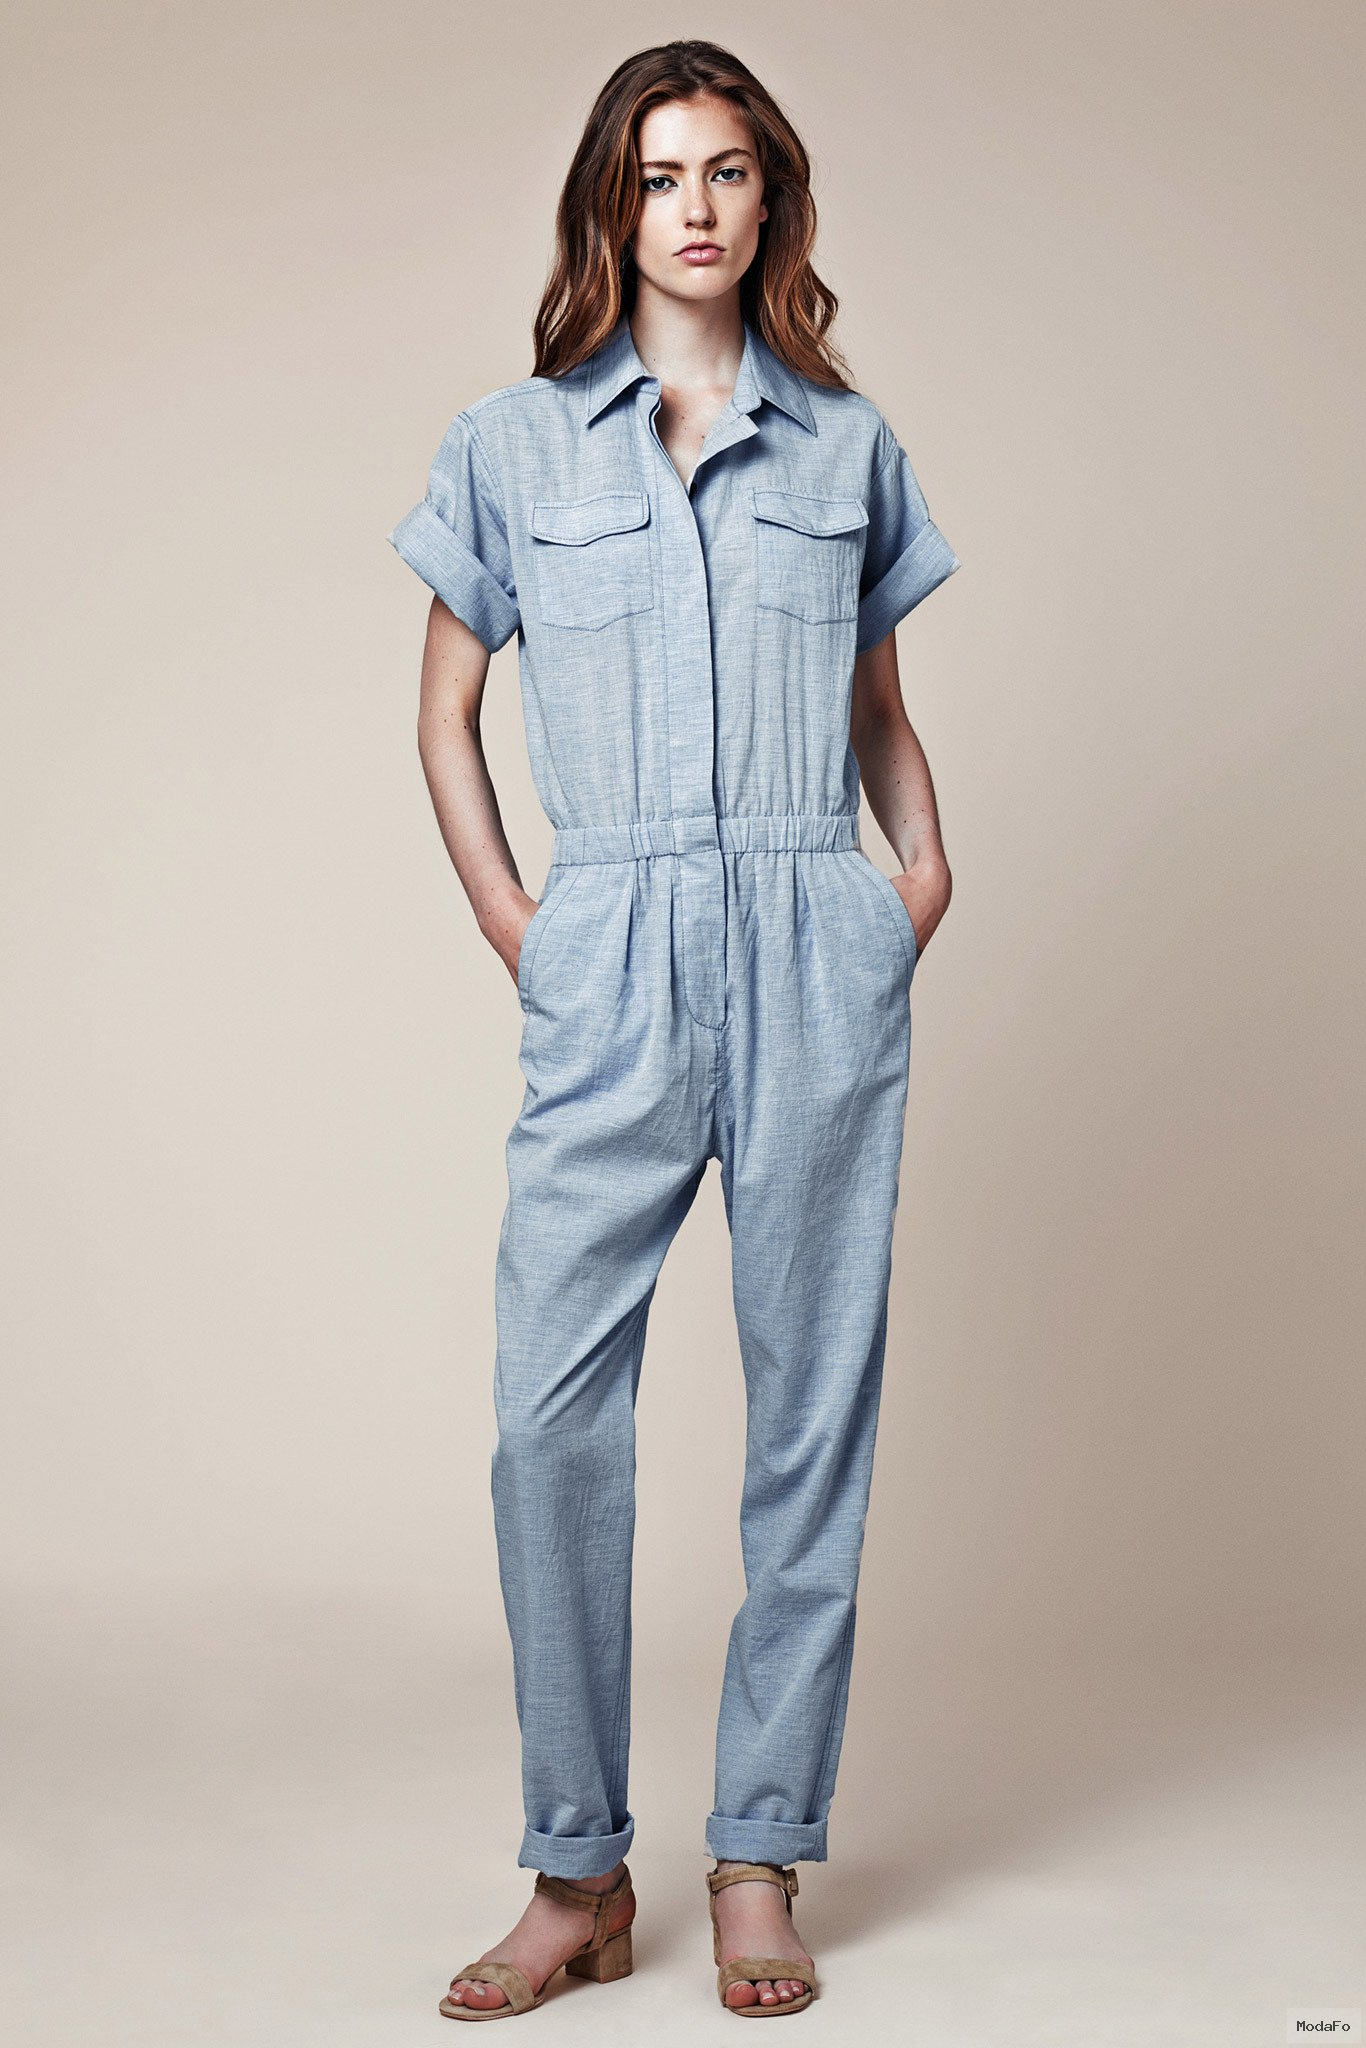 What jumpsuits are in style